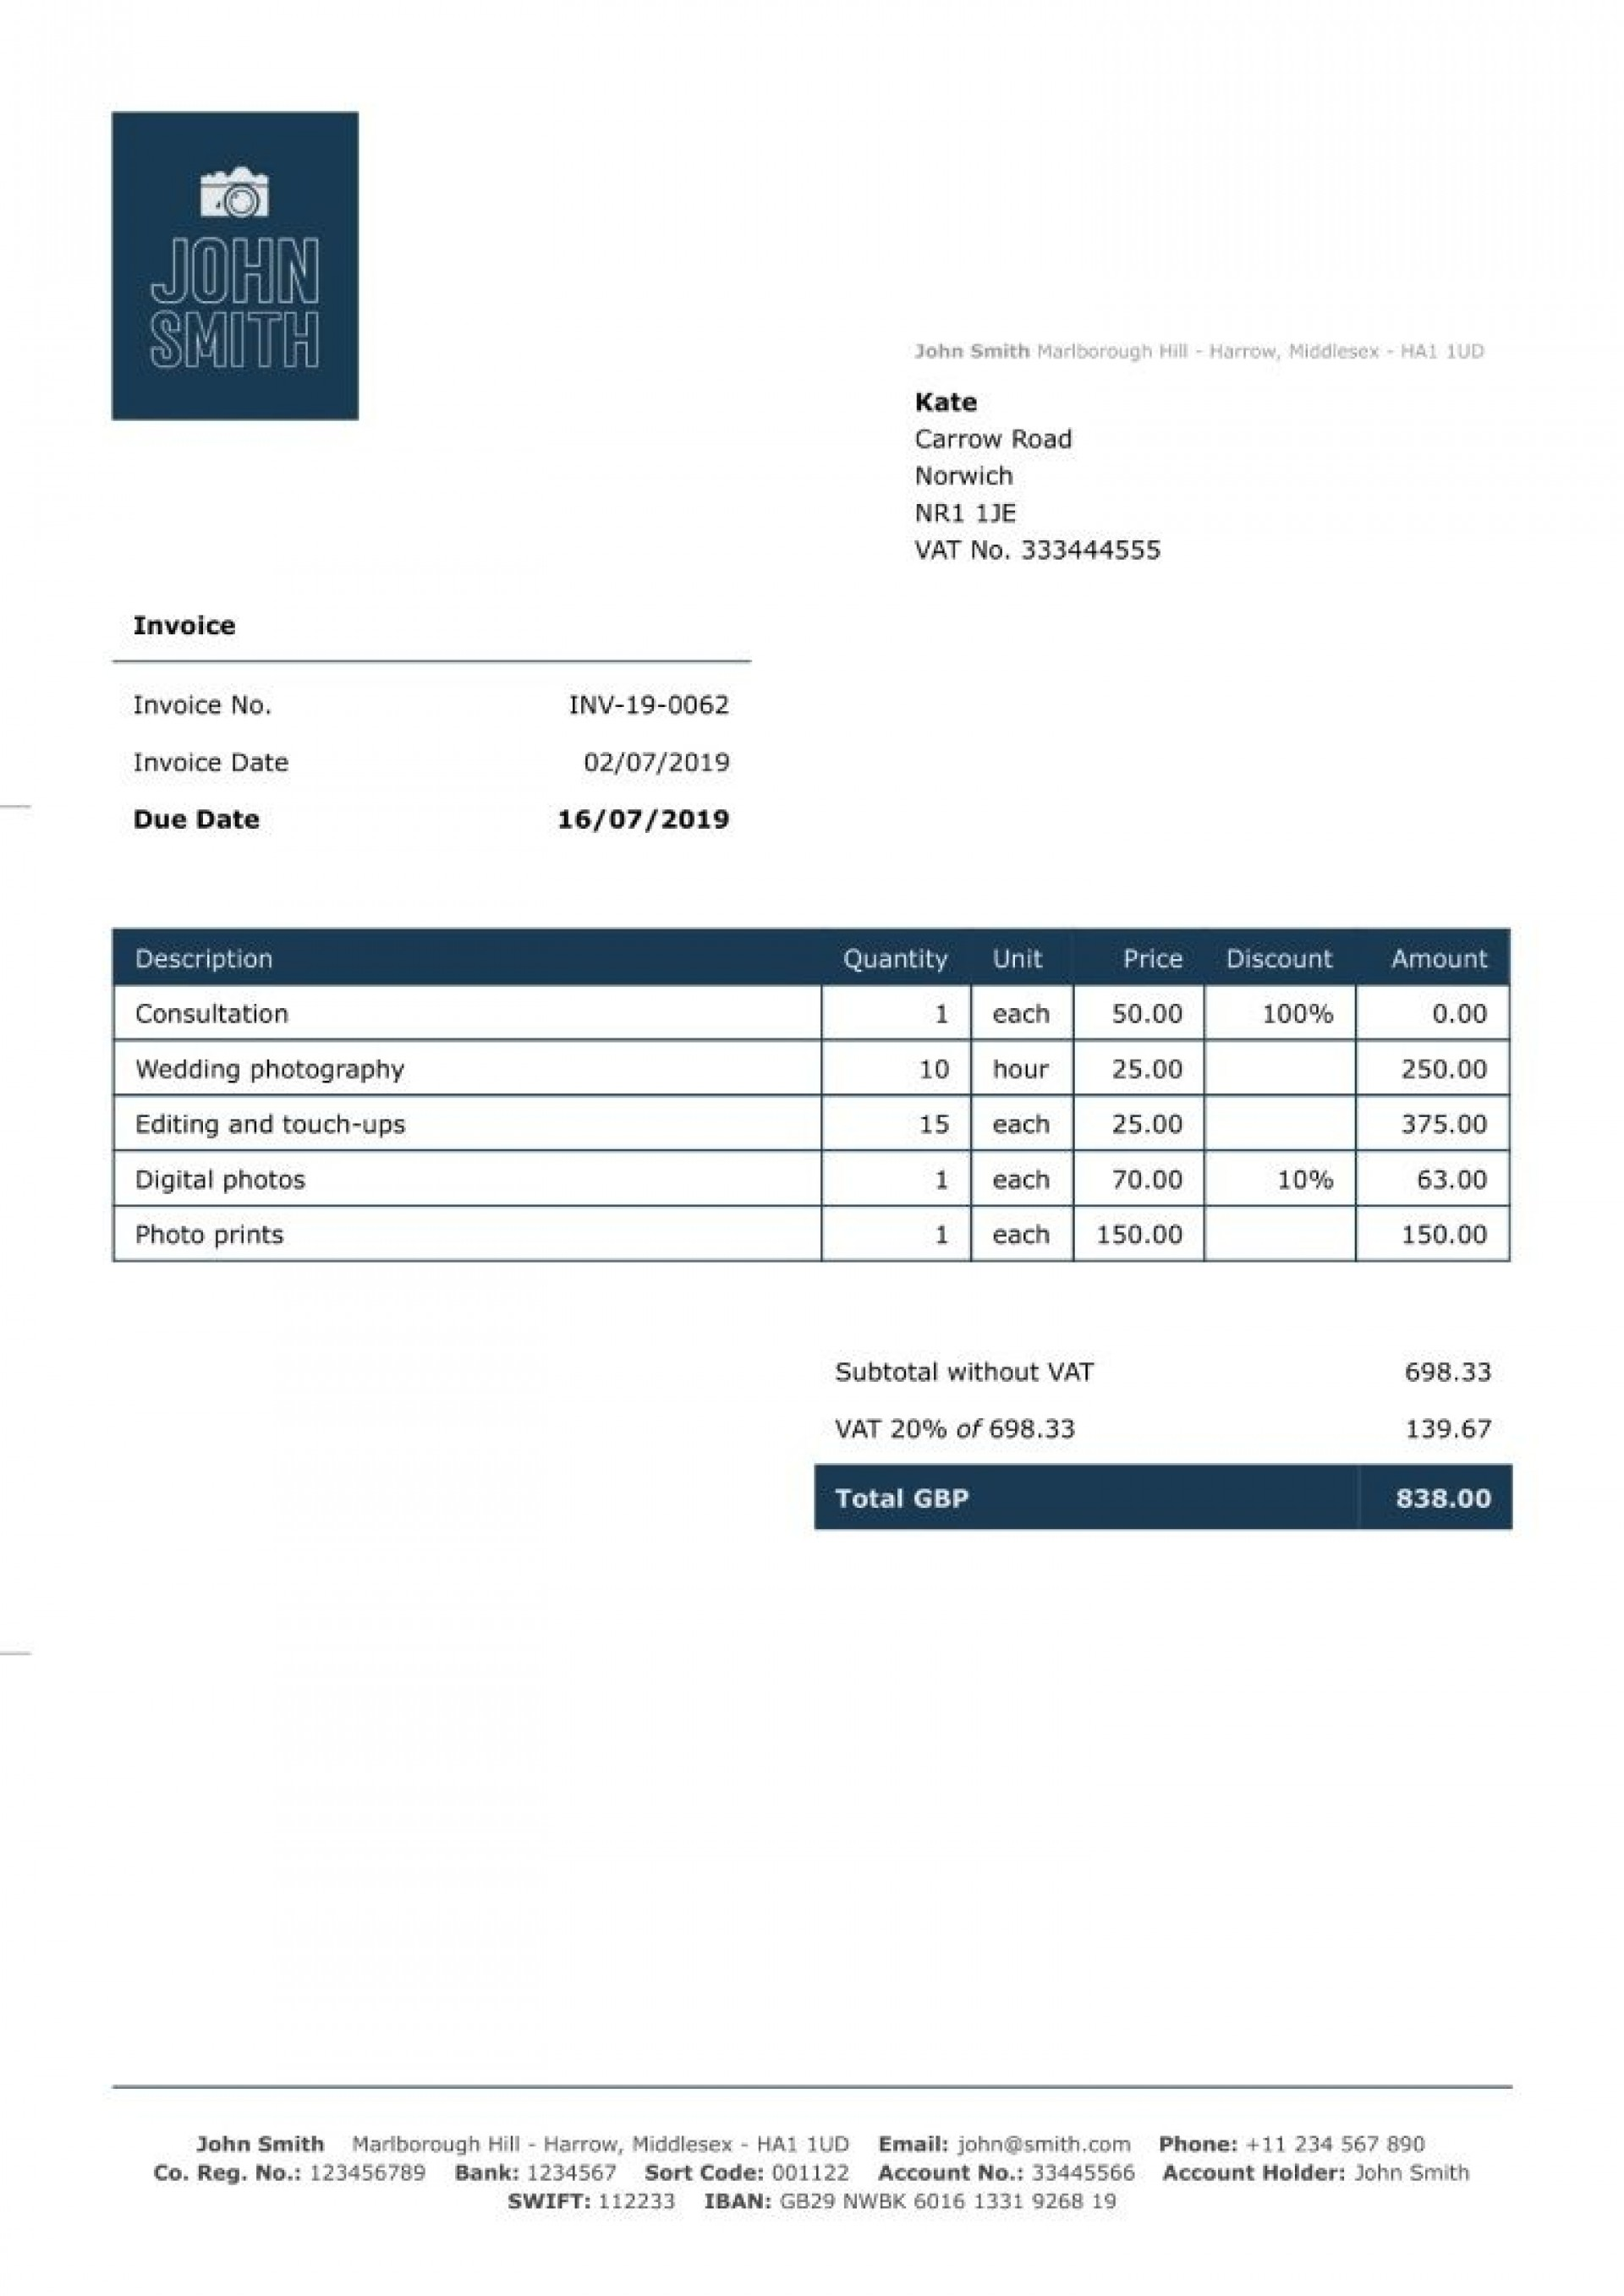 007 Unique Invoice Template Uk Freelance Highest Quality  Example Sample Word1920